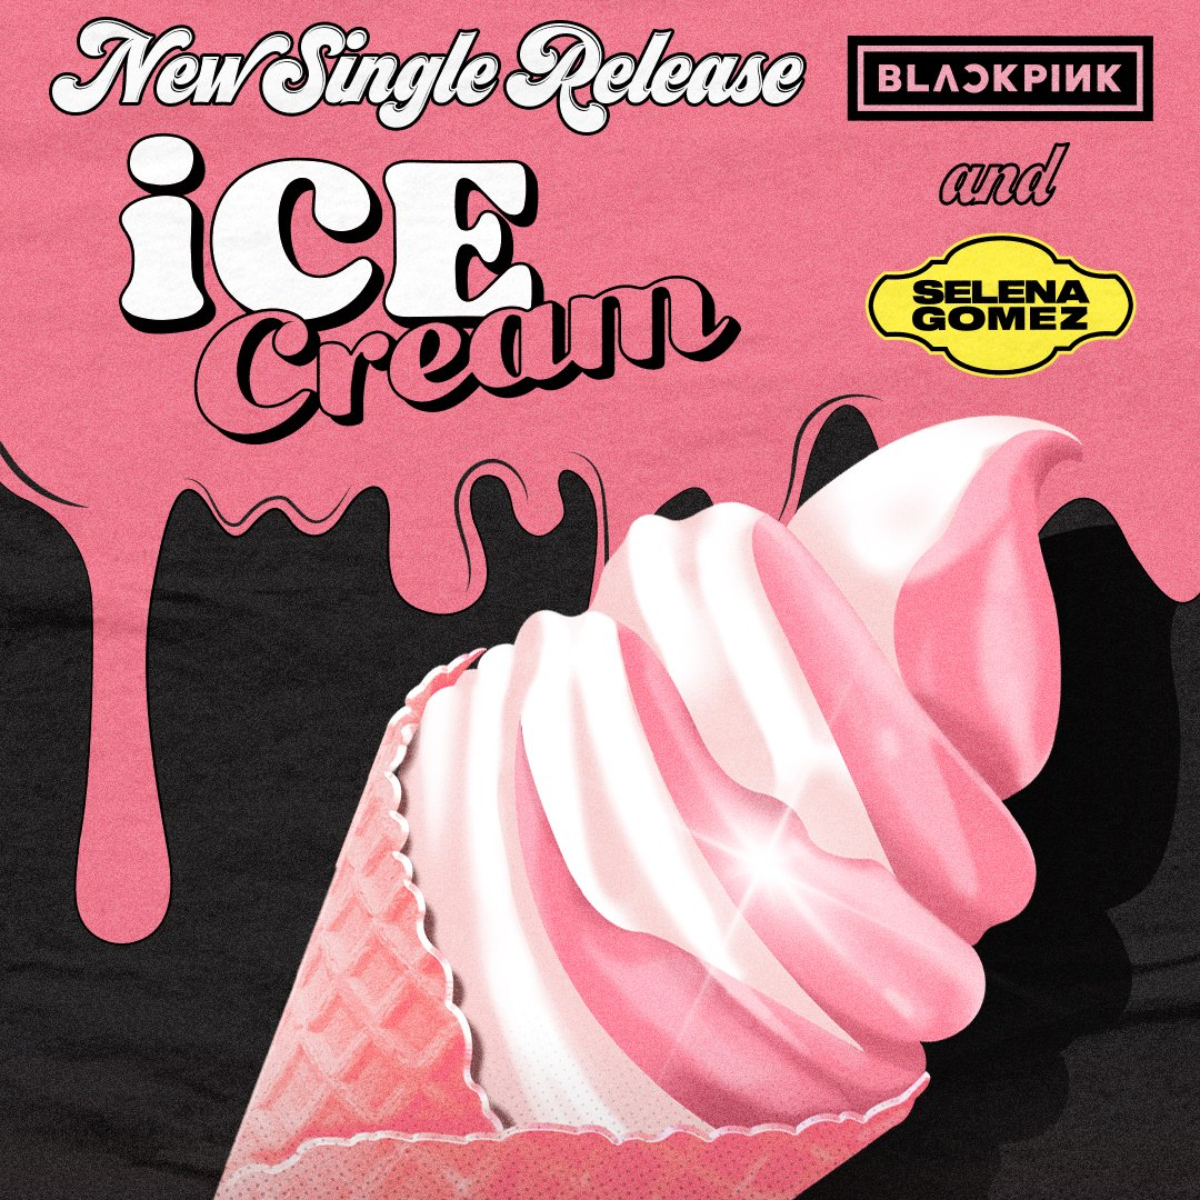 Ice Cream Blackpink Selena Gomez S New Single Title Unveiled Ariana Grande Takes Part In Creating The Song Pinkvilla